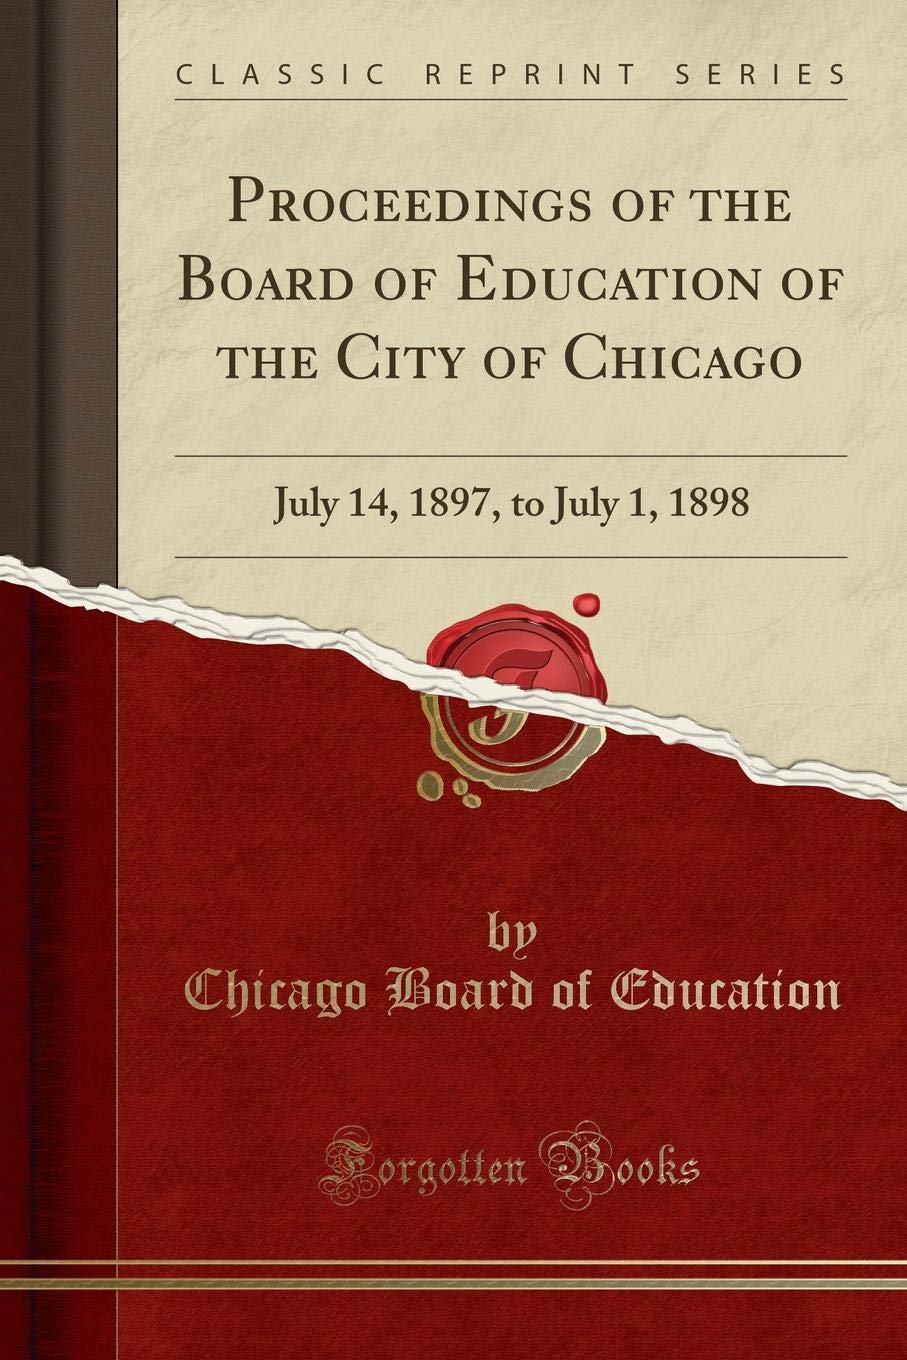 Proceedings of the Board of Education of the City of Chicago: July 14, 1897, to July 1, 1898 (Classic Reprint) pdf